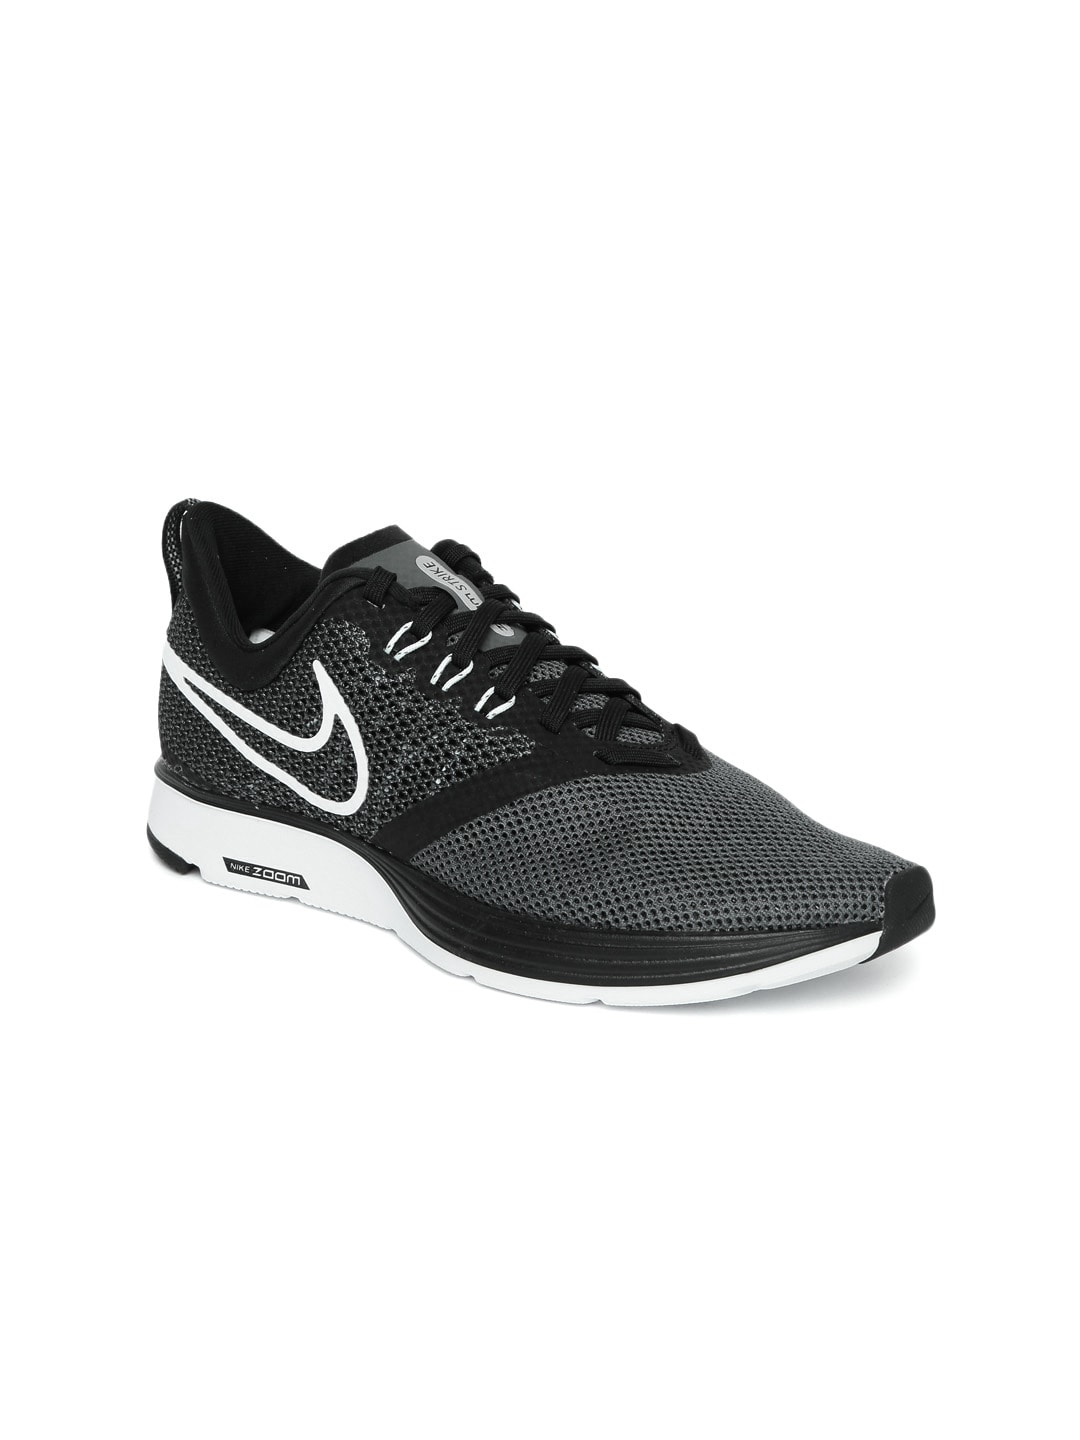 e5082c58ee41 Nike Shoes - Buy Nike Shoes for Men